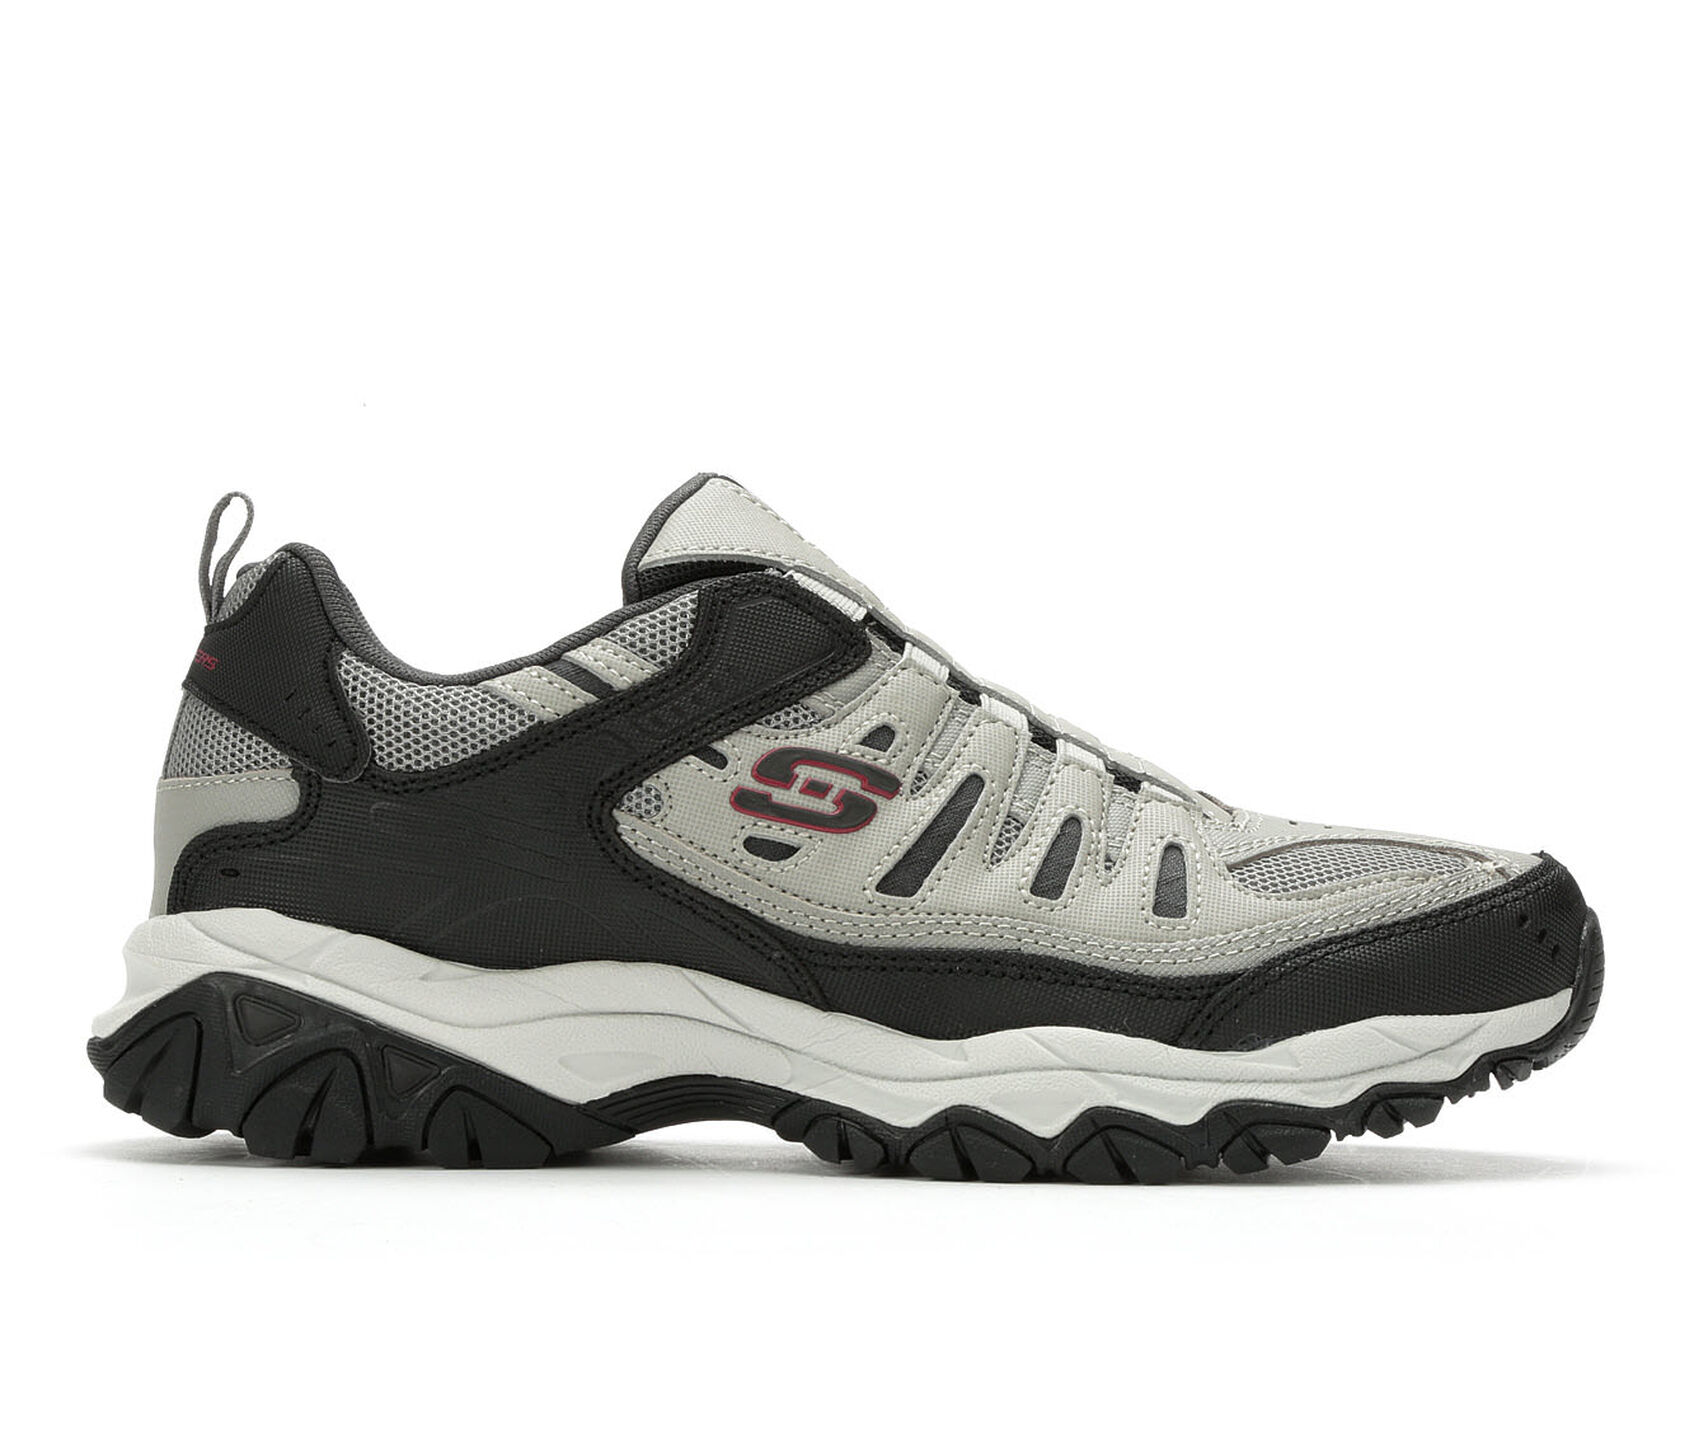 skechers shoes photos